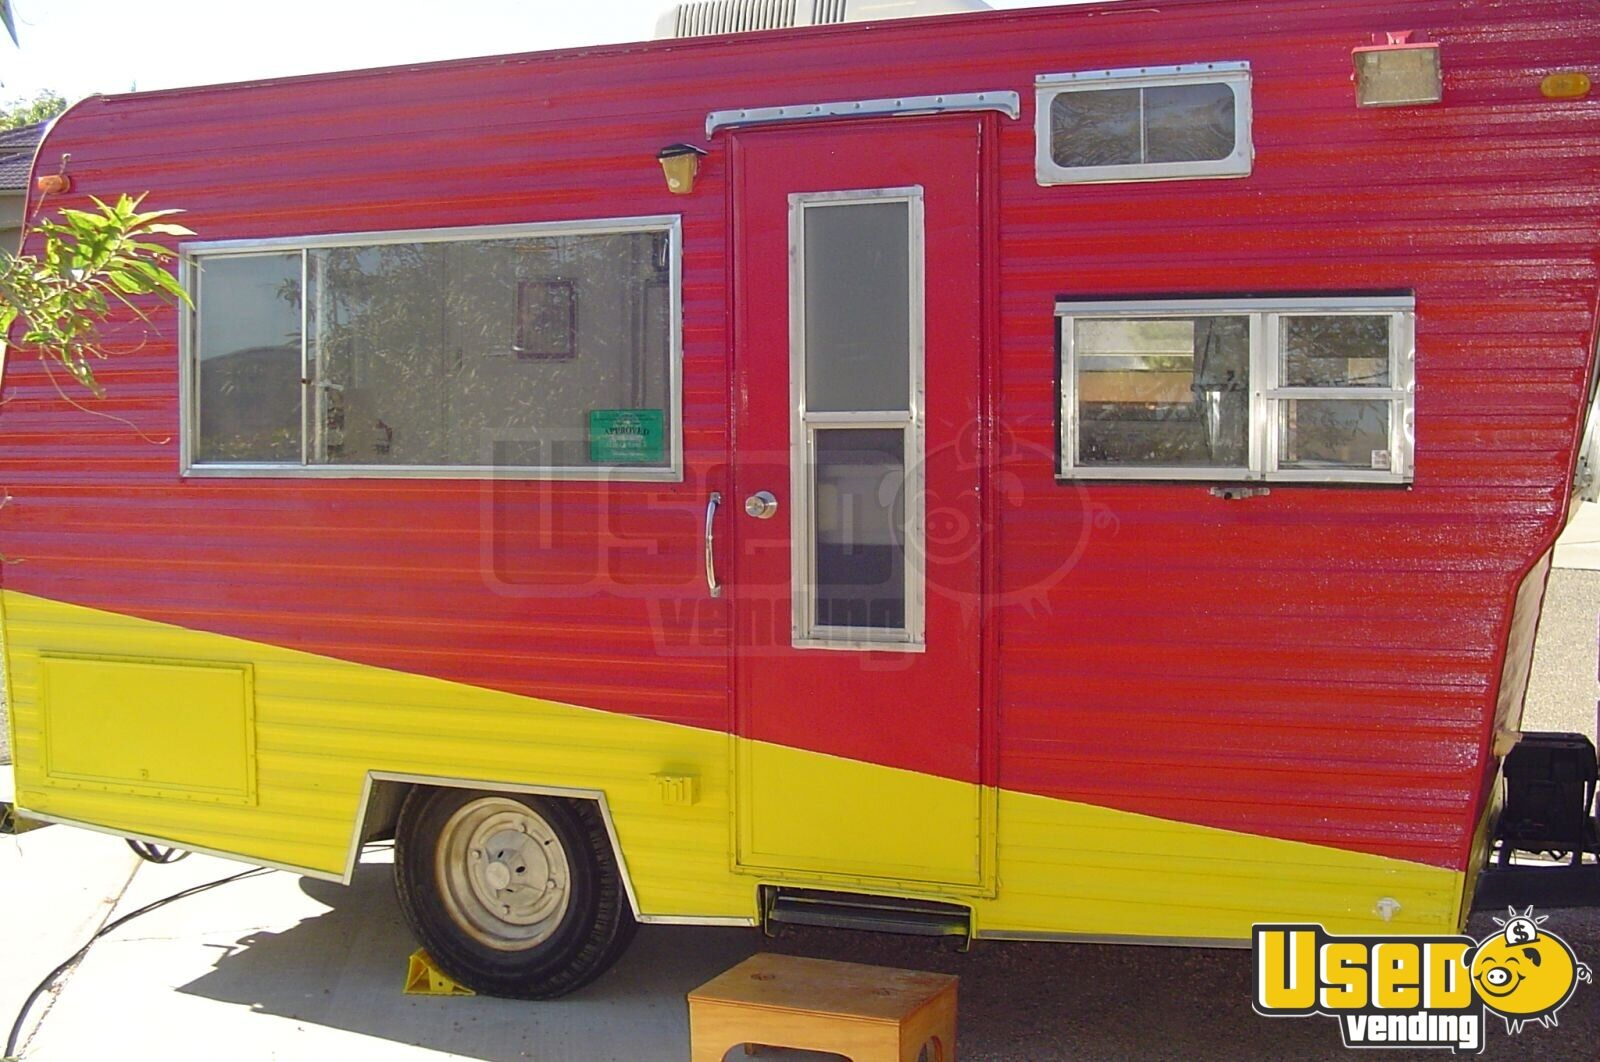 Used 17 Concession Trailer Food Trailer In New Mexico